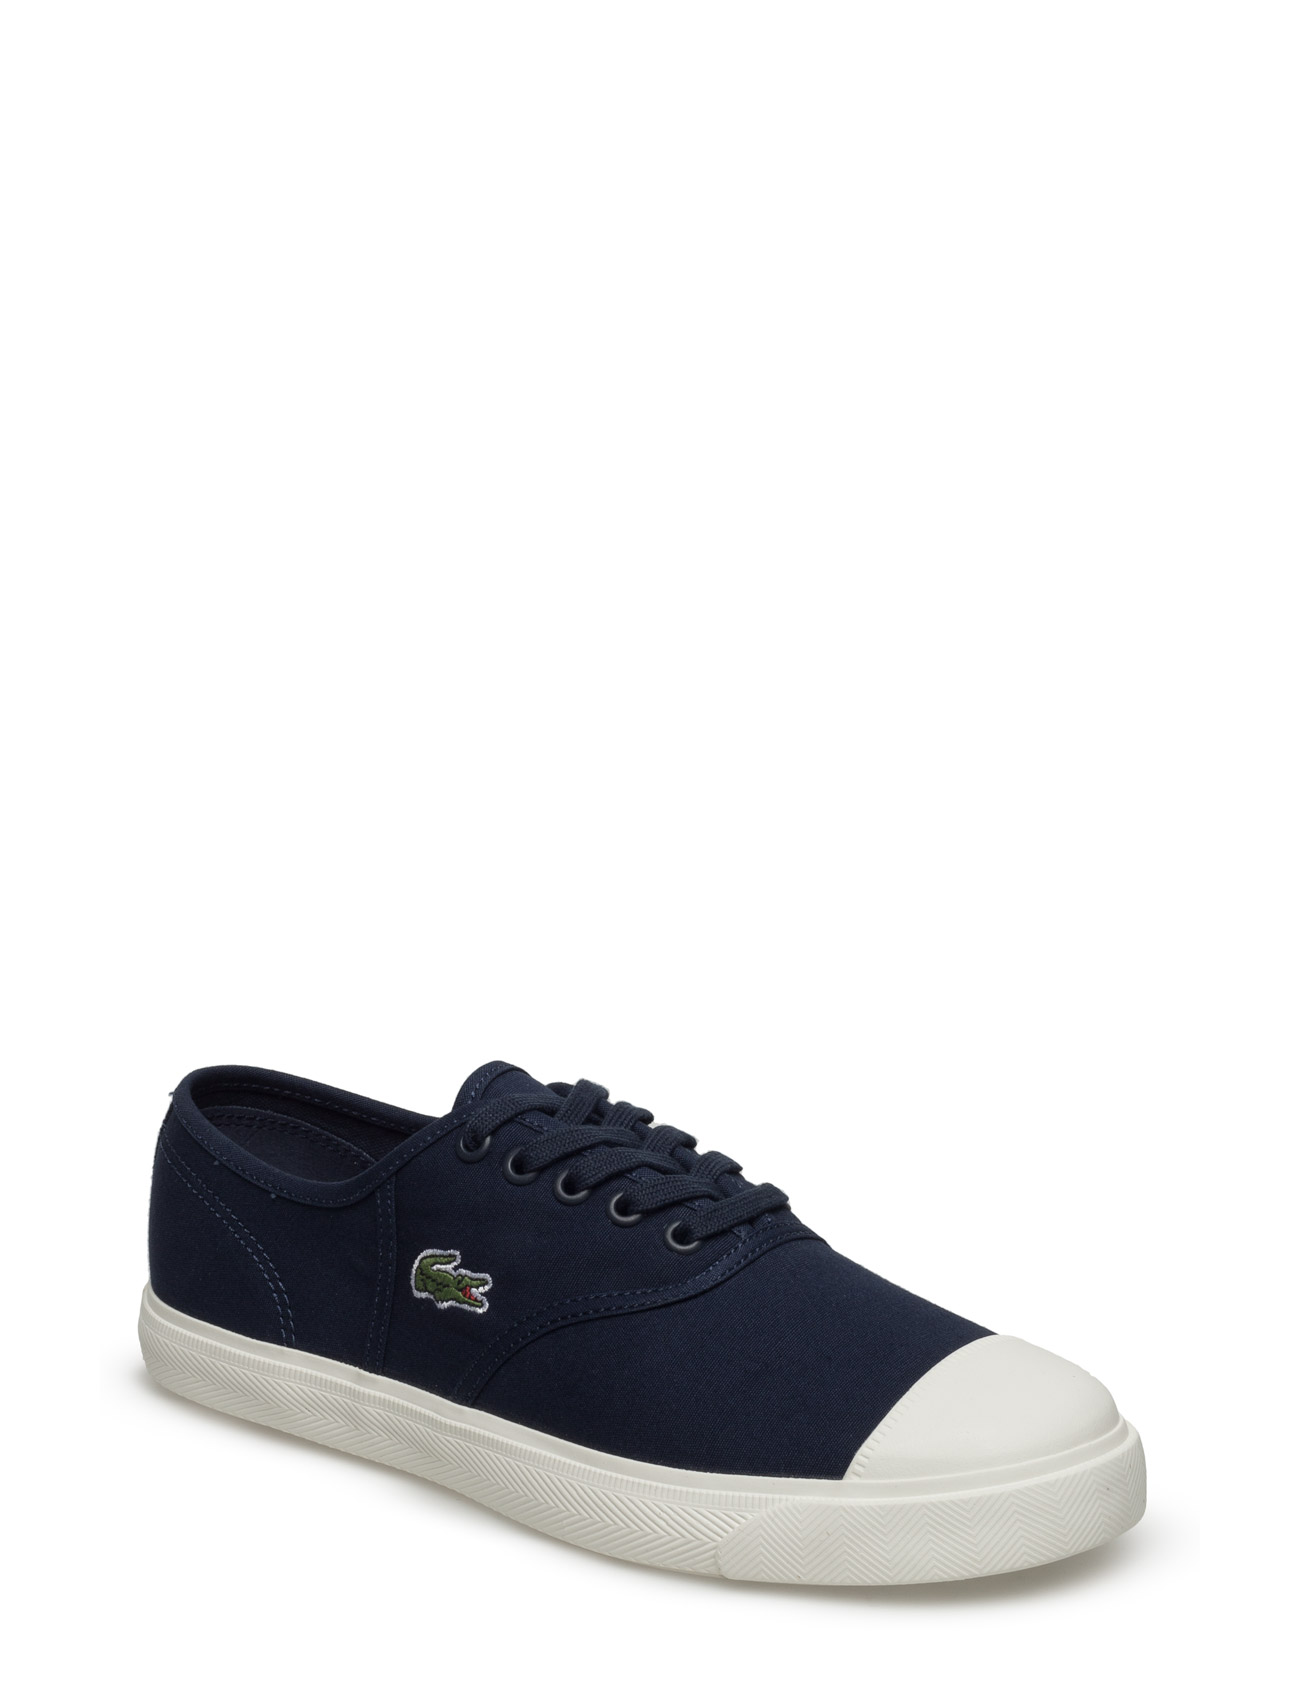 lacoste shoes Rene 117 1 fra boozt.com dk